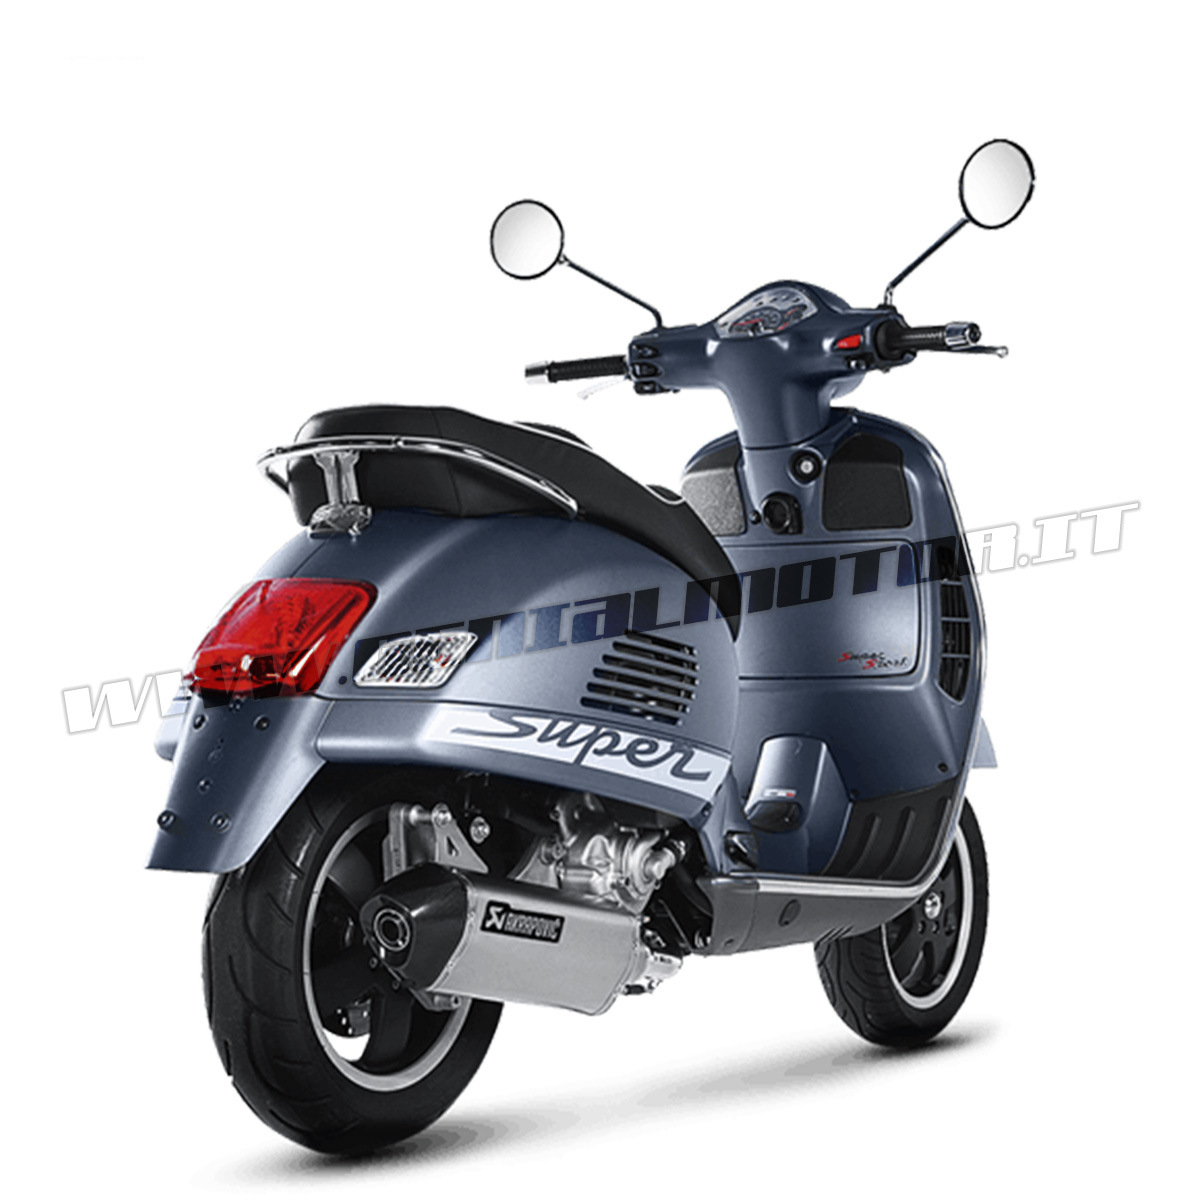 S Ve3so6 Hrss Exhaust Inox Muffler Akrapovic S Ve3so6 Hrss Piaggio Vespa Gts 300 2008 2015